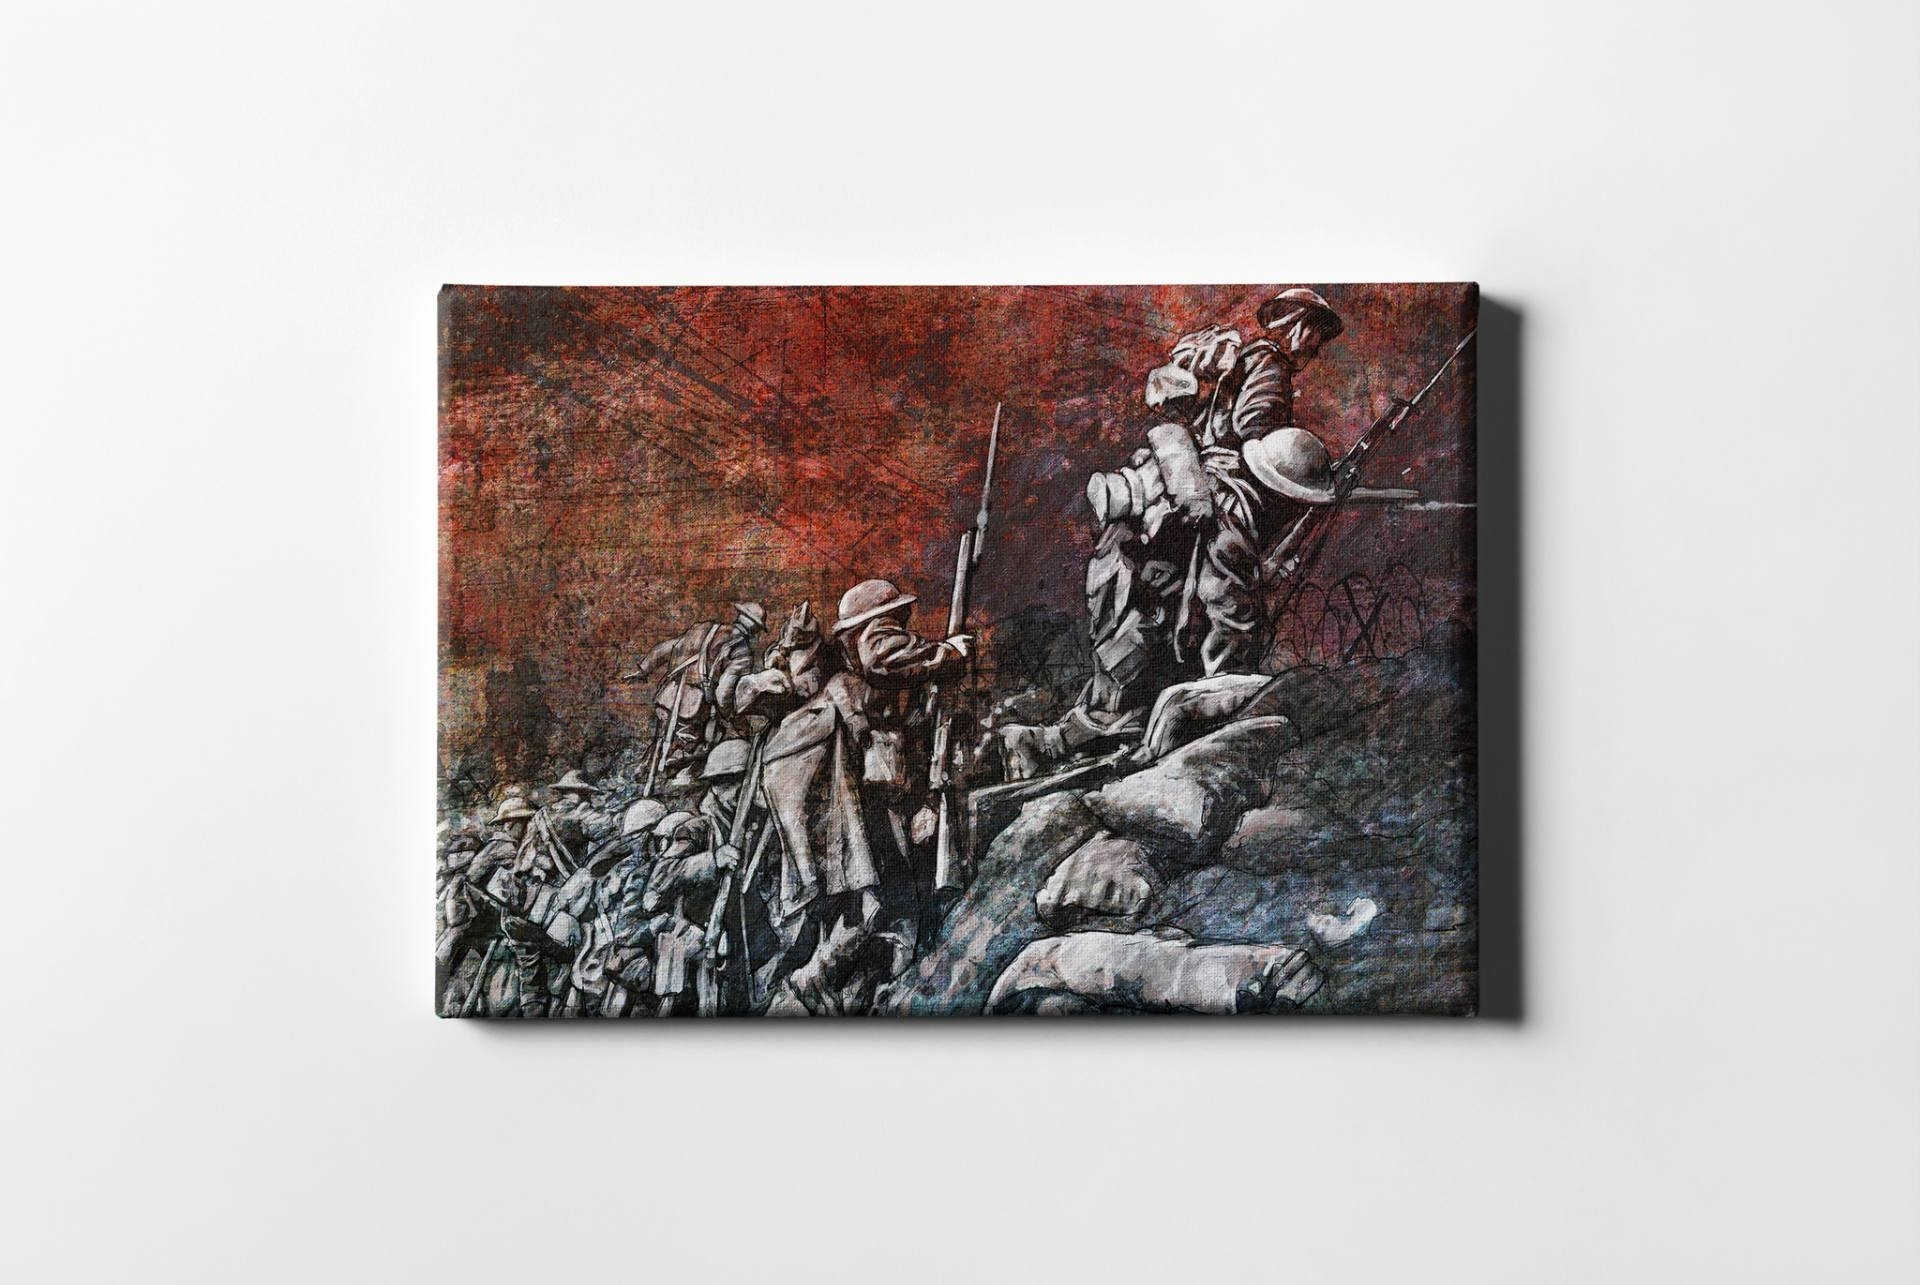 Saatchi Art: Remembrance Day Art Original Limited Edition Canvas For Most Recent Limited Edition Canvas Wall Art (View 9 of 20)